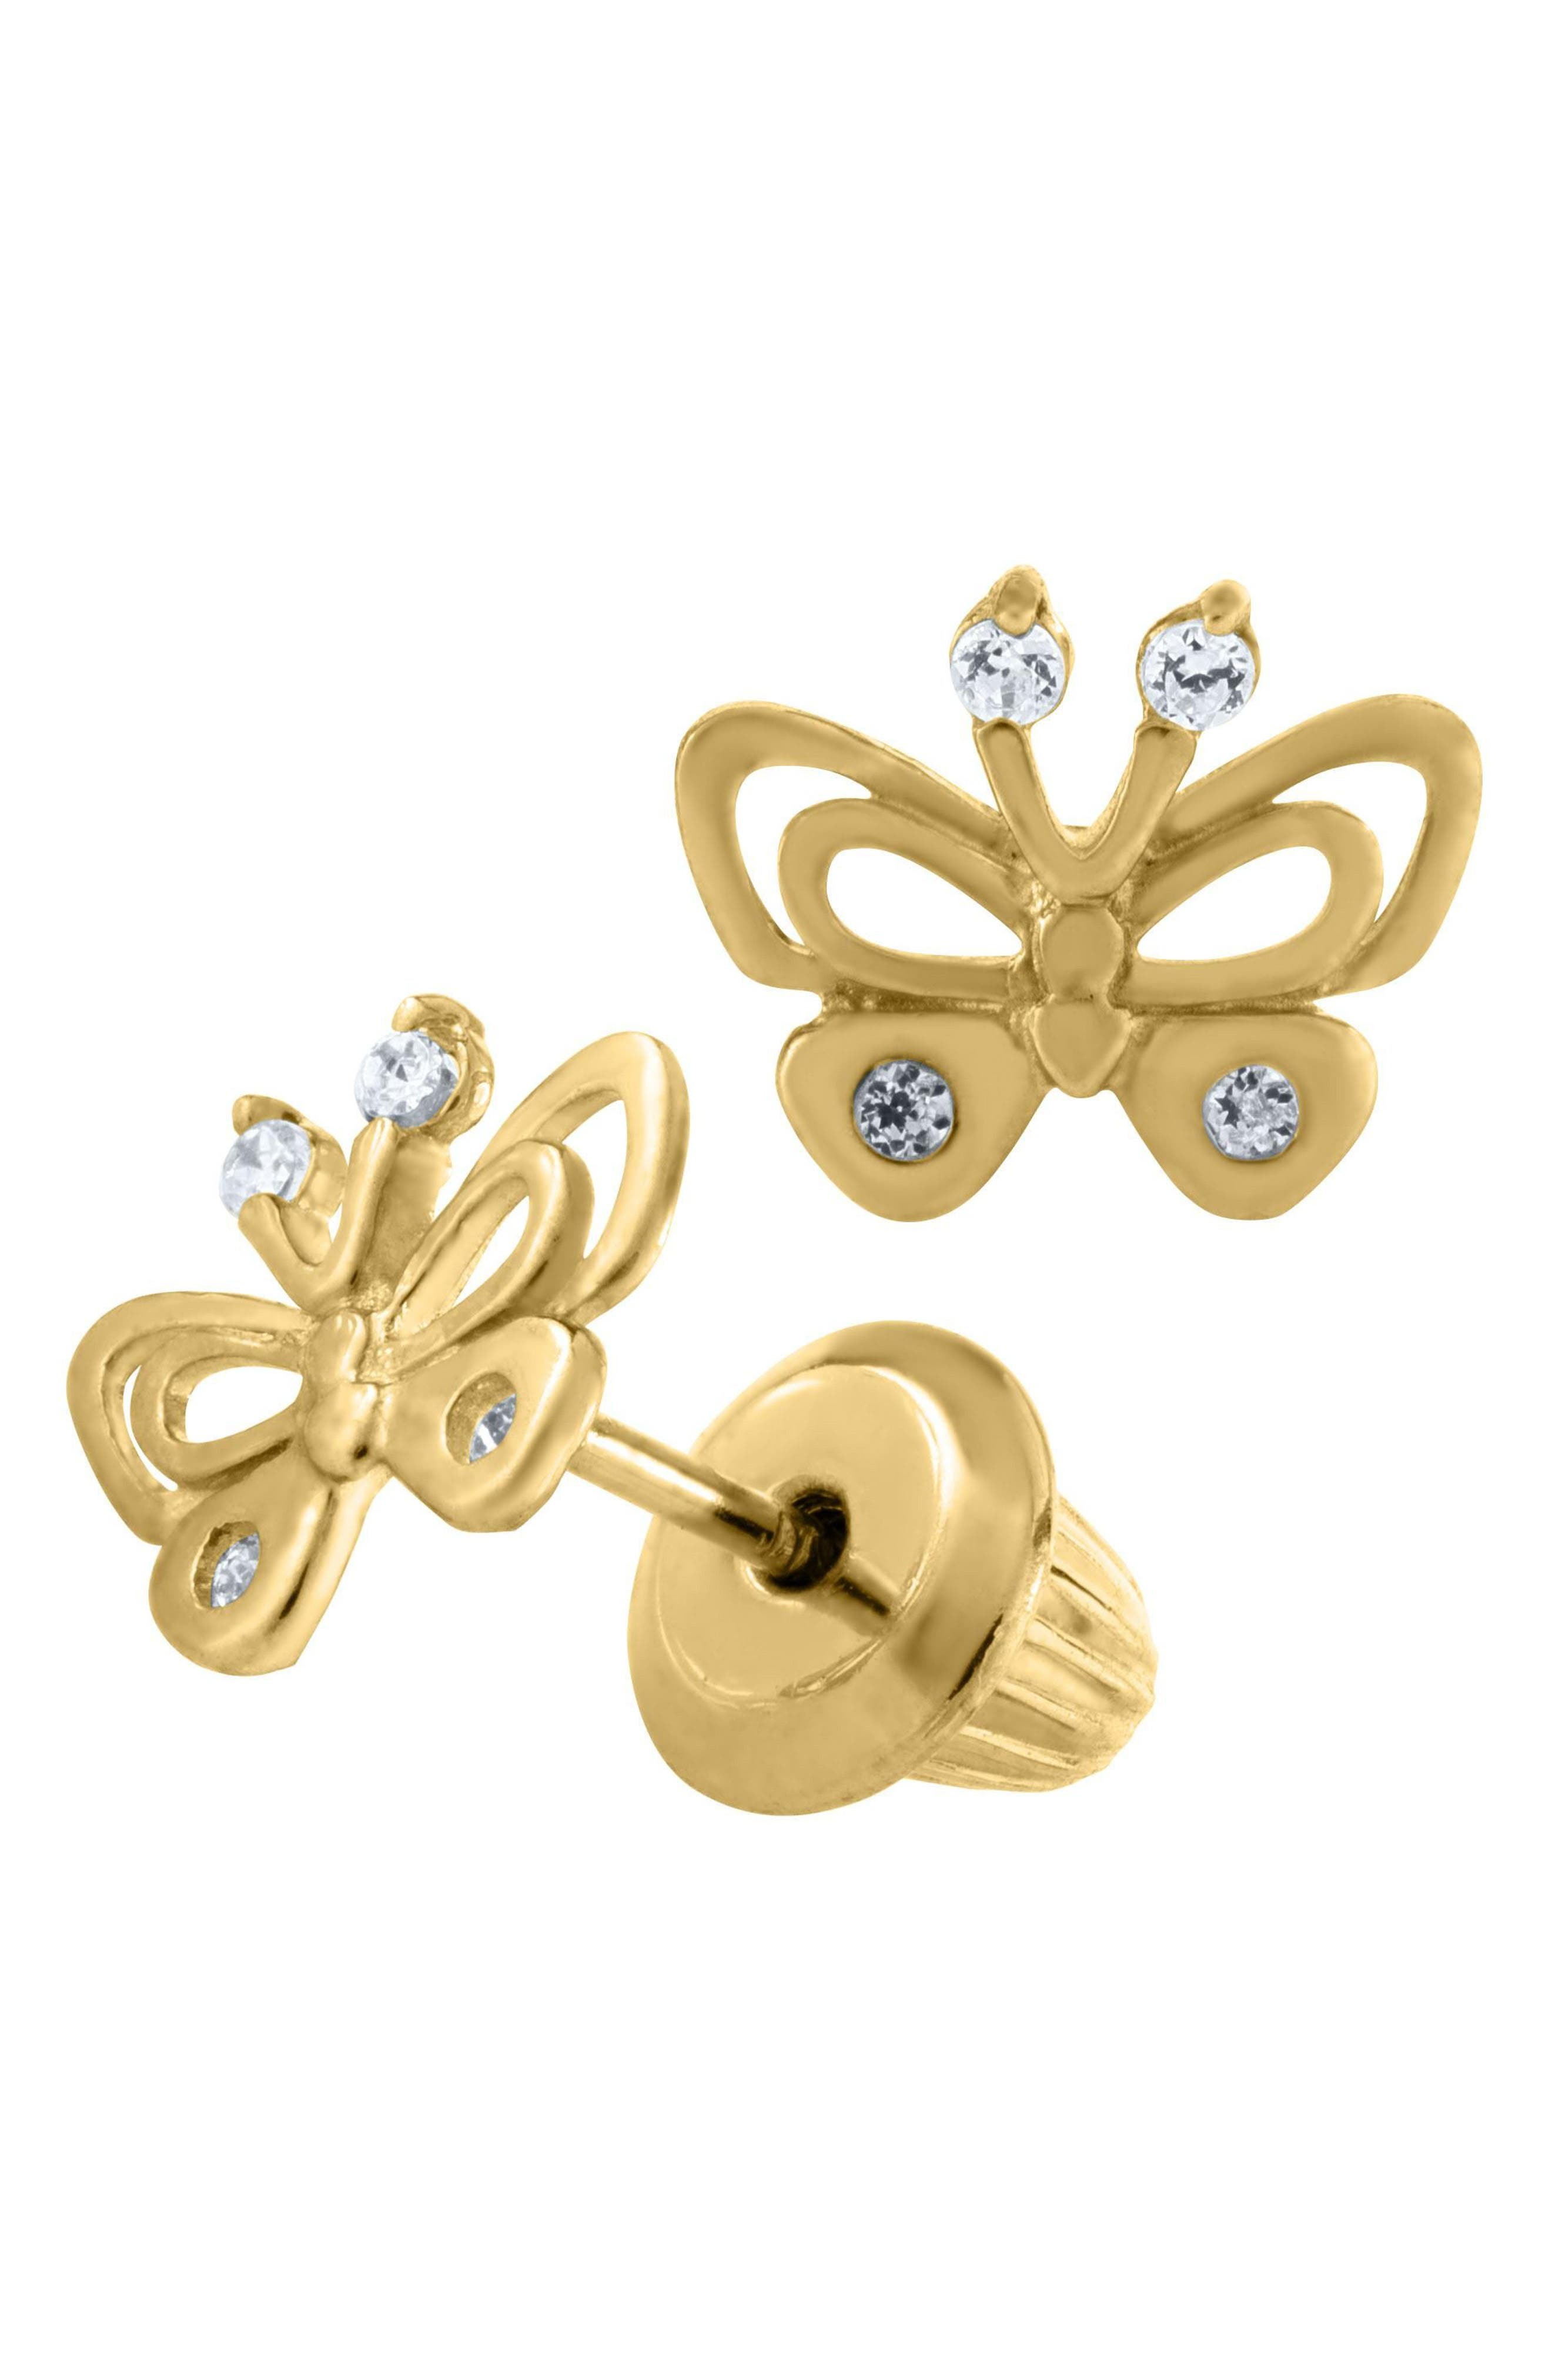 14k Gold Butterfly Earrings,                             Main thumbnail 1, color,                             GOLD